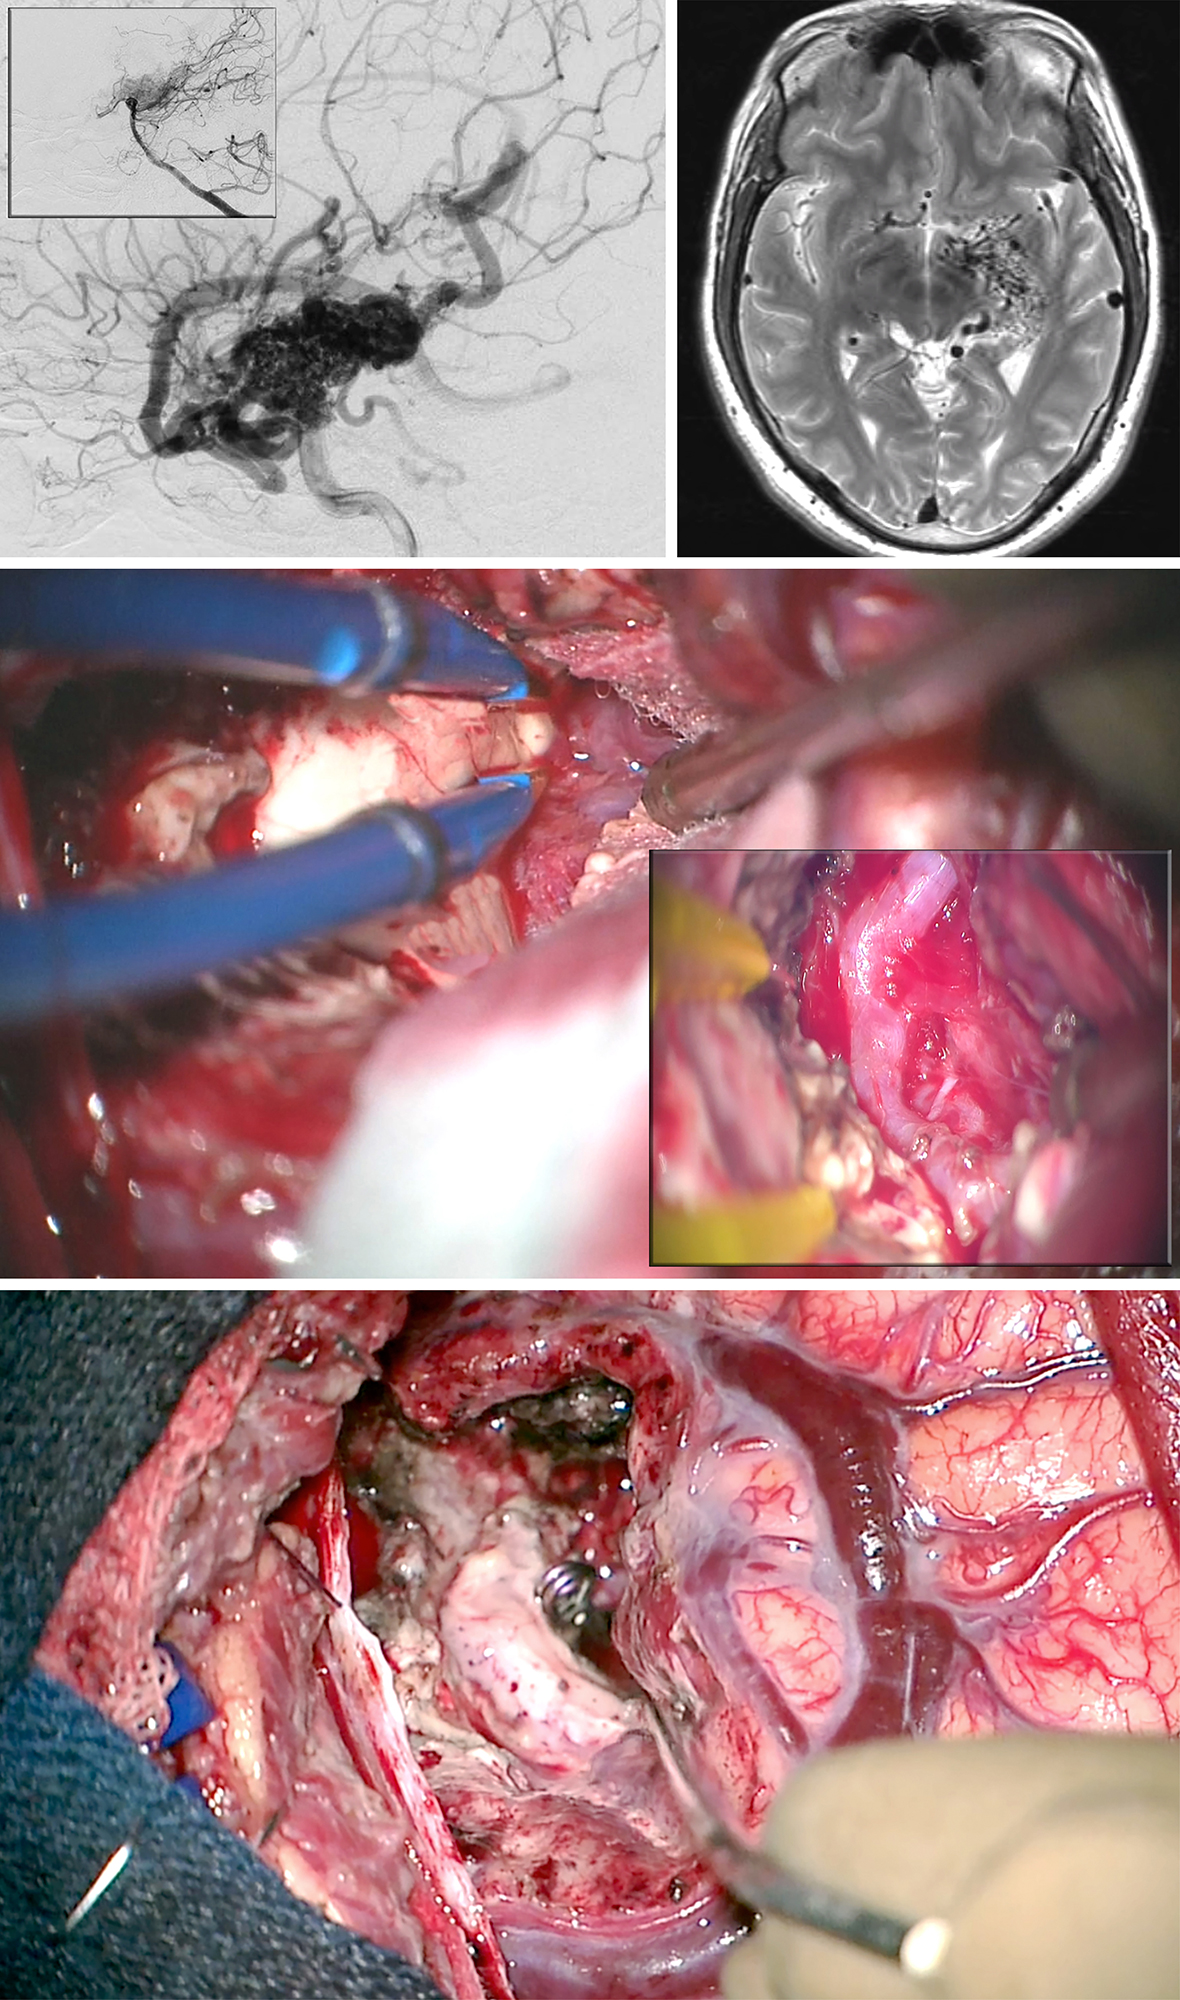 Figure 16: A large posterior medial temporal AVM, primarily fed by the anterior choroidal artery, is shown (lateral ICA and vertebral artery, inset, angiograms-upper images). I used the transcortical transventricular transchoroidal approach in this case (middle photo). The anterior choroidal artery was exposed within the choroidal fissure through the temporal horn (middle photo-inset). After disconnection of the AVM, the anterior choroidal artery was sacrificed at the level of the nidus and the AVM extracted (lower photo). All superficial veins turned dark blue.